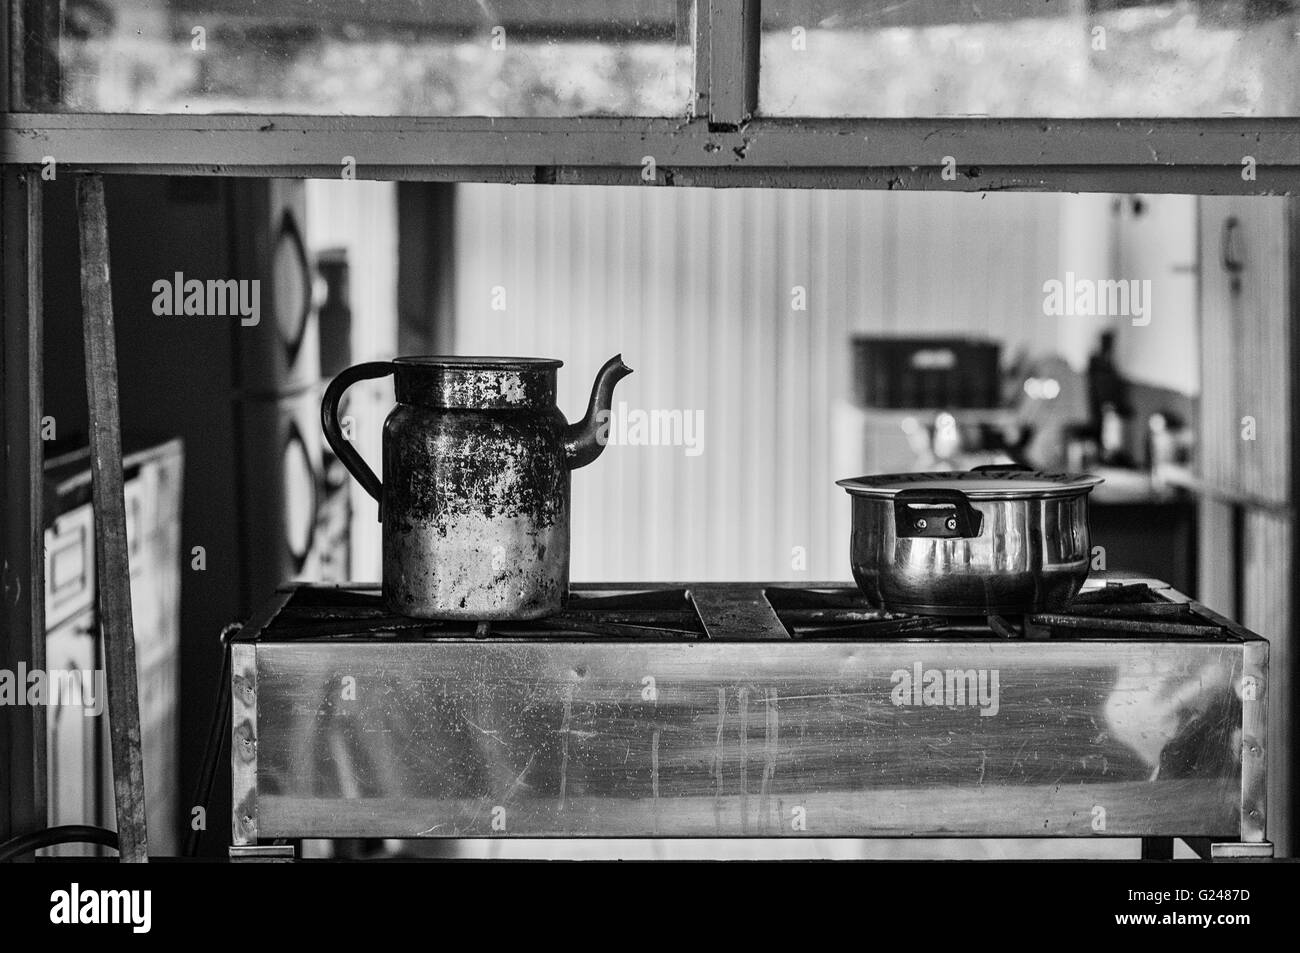 Old Kitchen with a kettle and a cooking pot on a stove viewed through a window - Stock Image